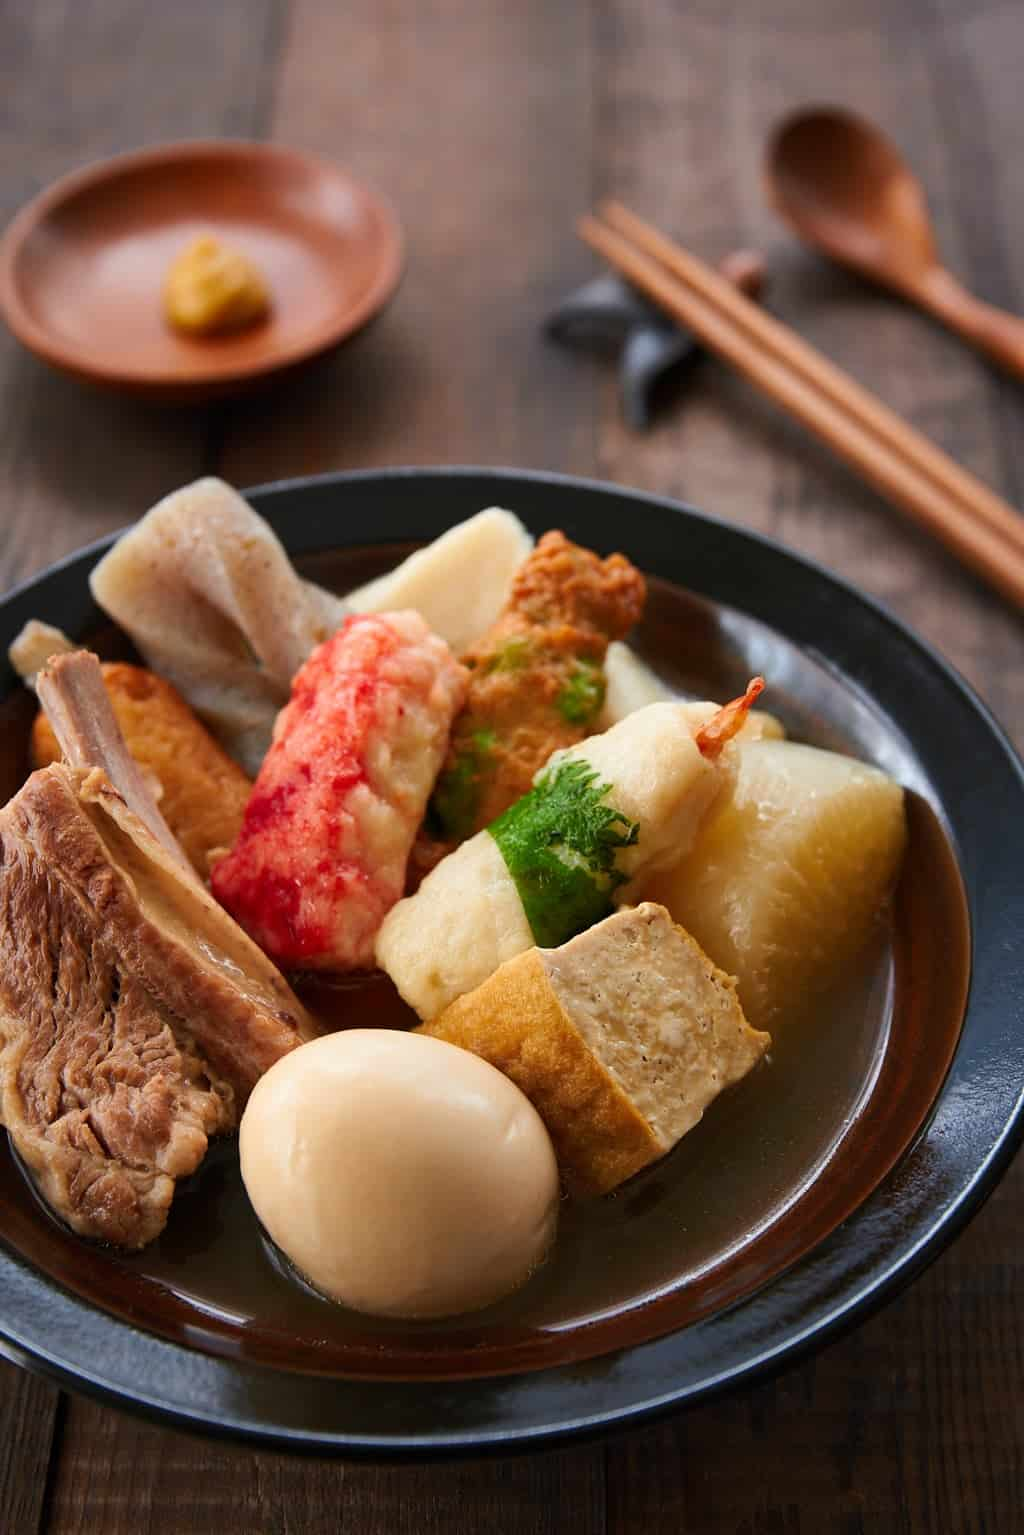 Oden is the quintessential Japanese comfort food. With meat, tofu, daikon, boiled eggs, and konnyaku simmered in dashi stock, it will warm you up from the inside out.